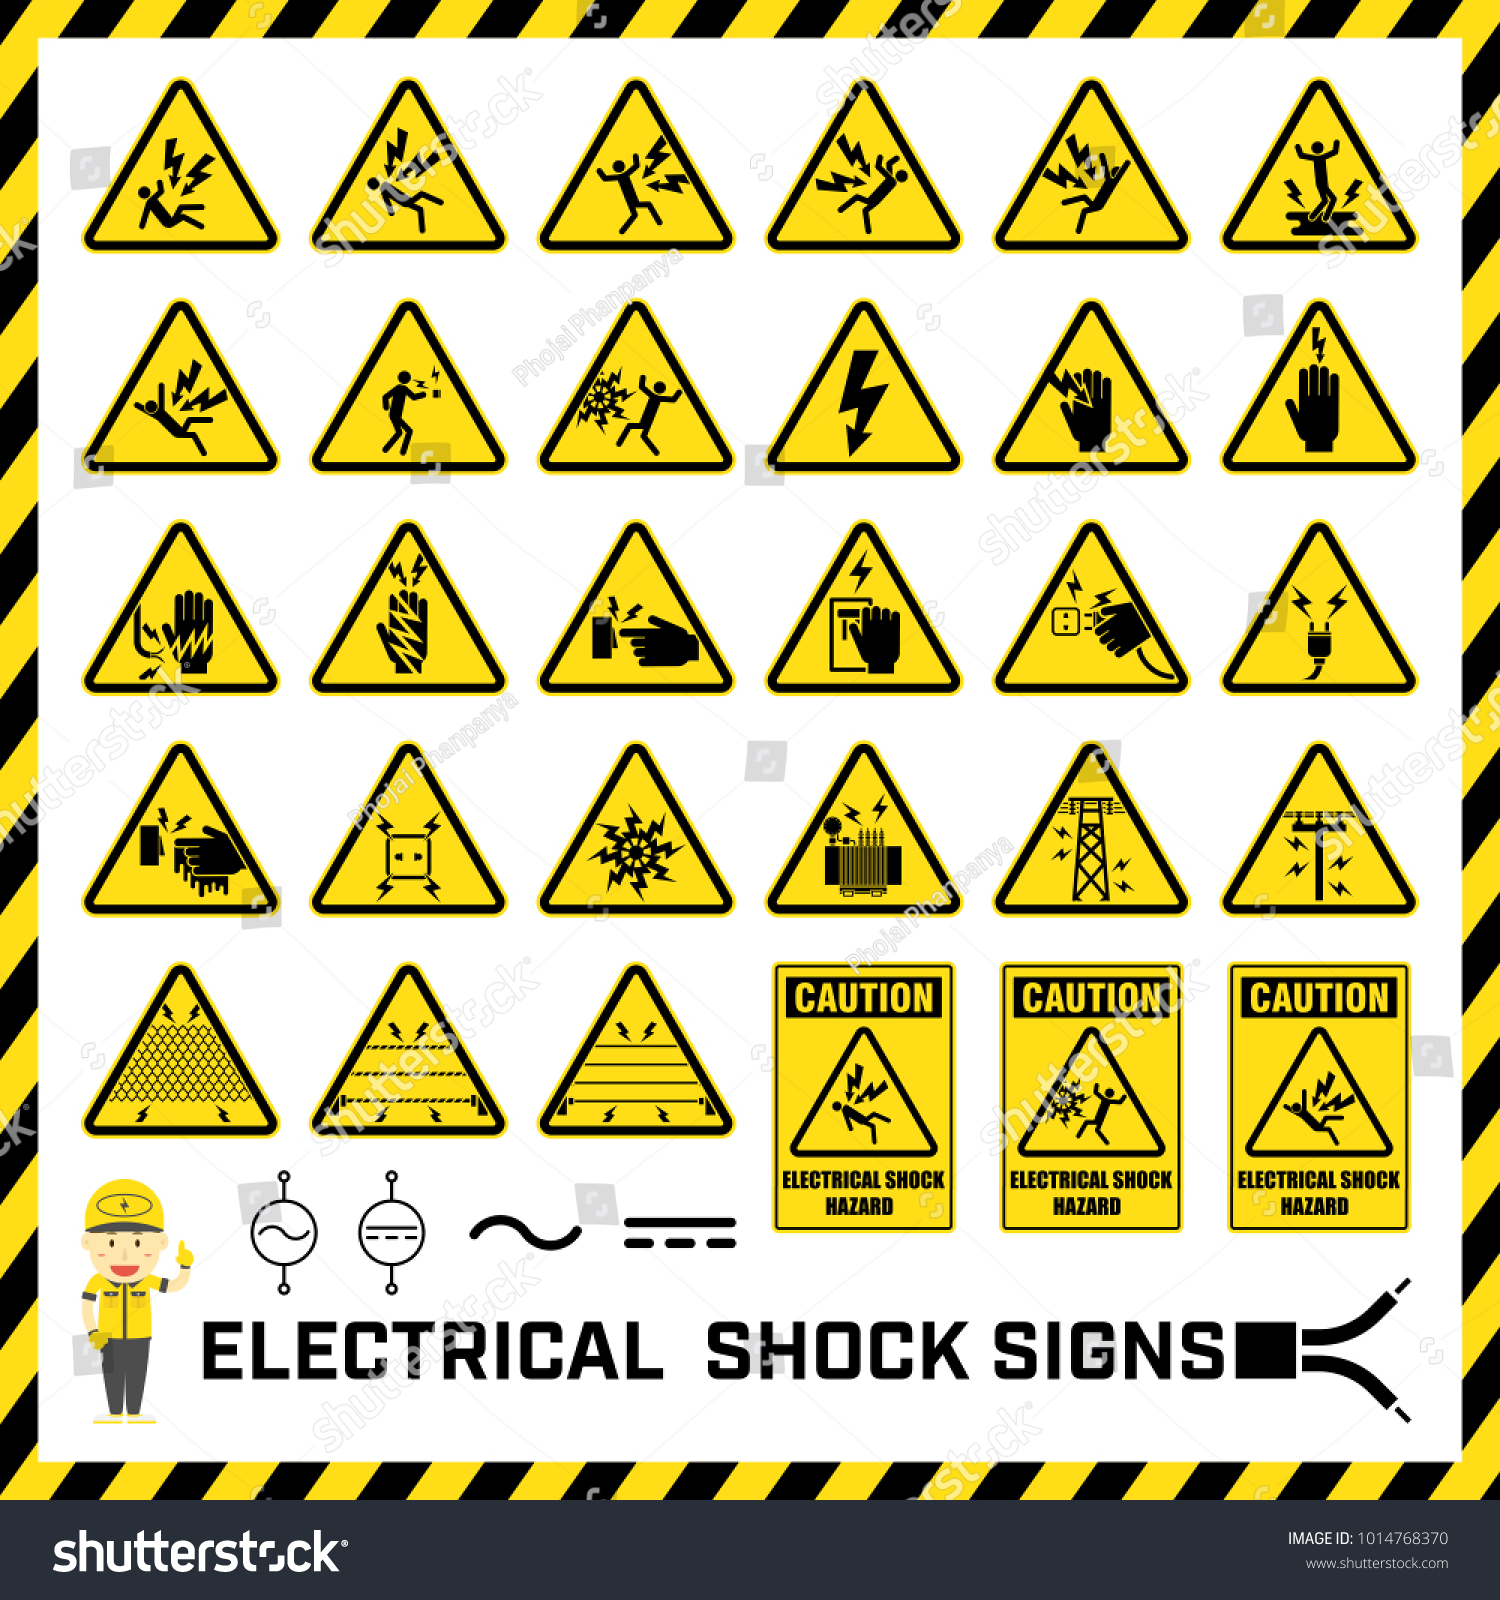 Set Safety Caution Signs Symbols Electrical Stock Vector (Royalty